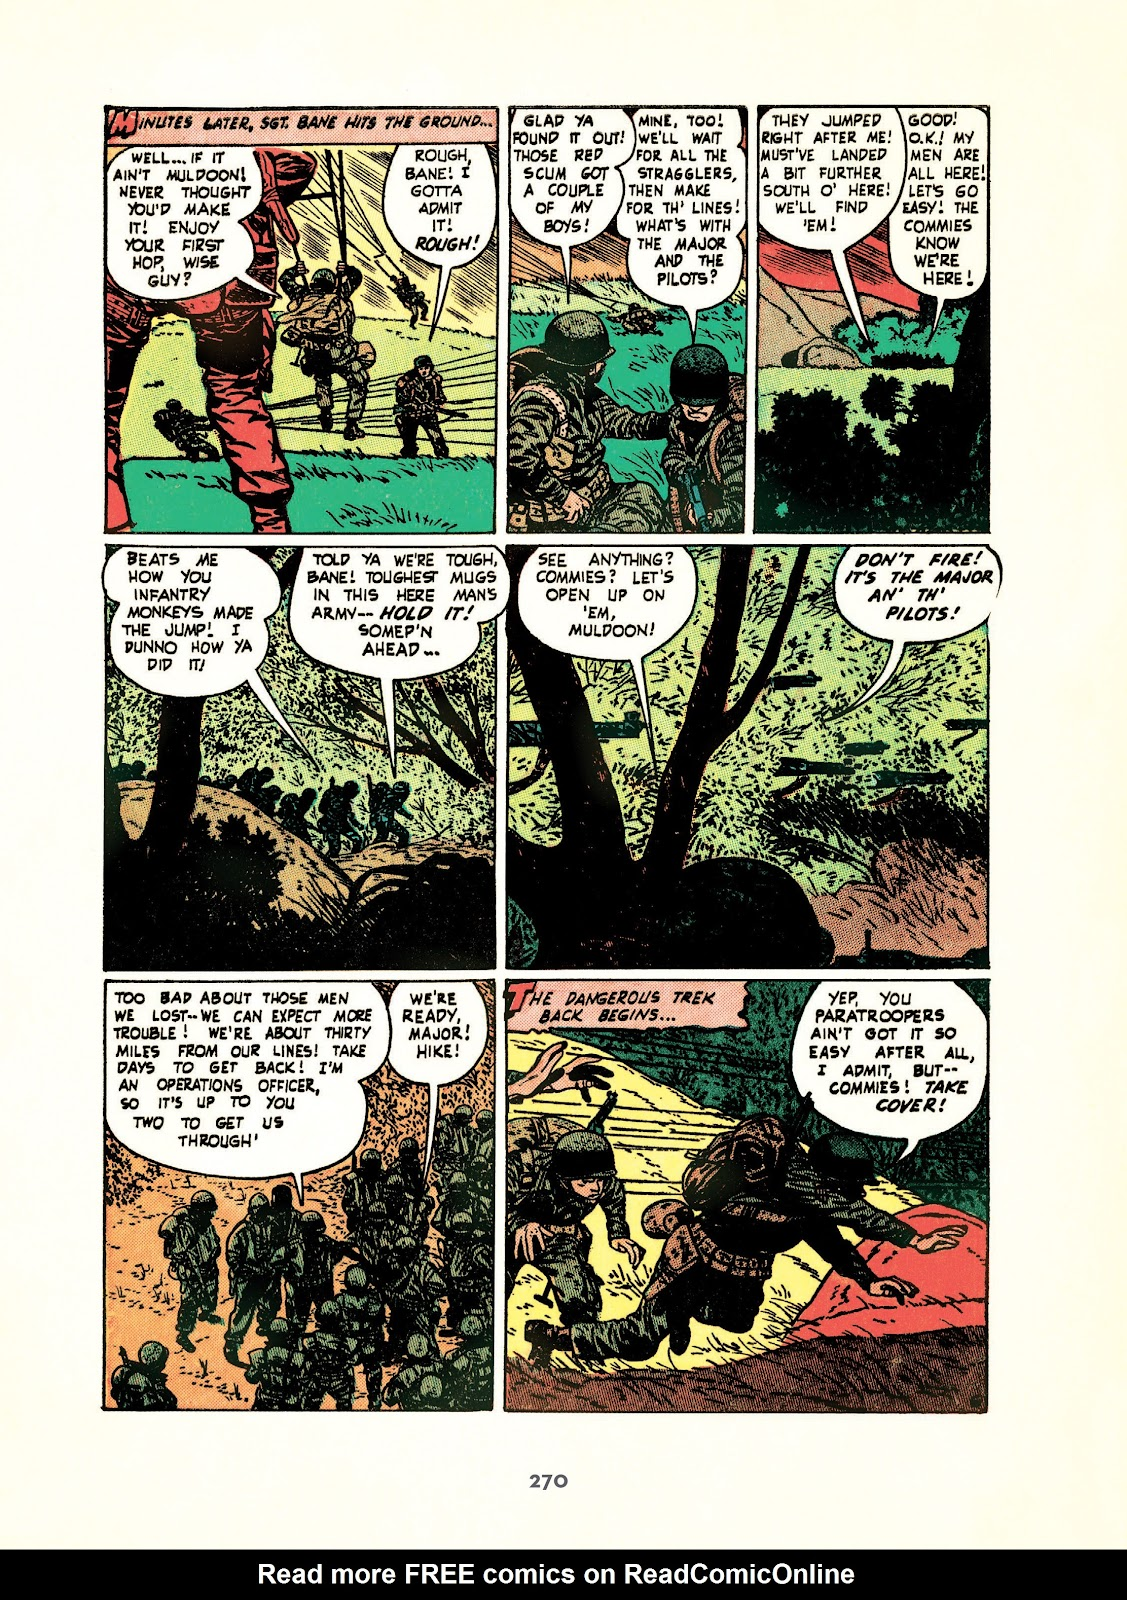 Read online Setting the Standard: Comics by Alex Toth 1952-1954 comic -  Issue # TPB (Part 3) - 71